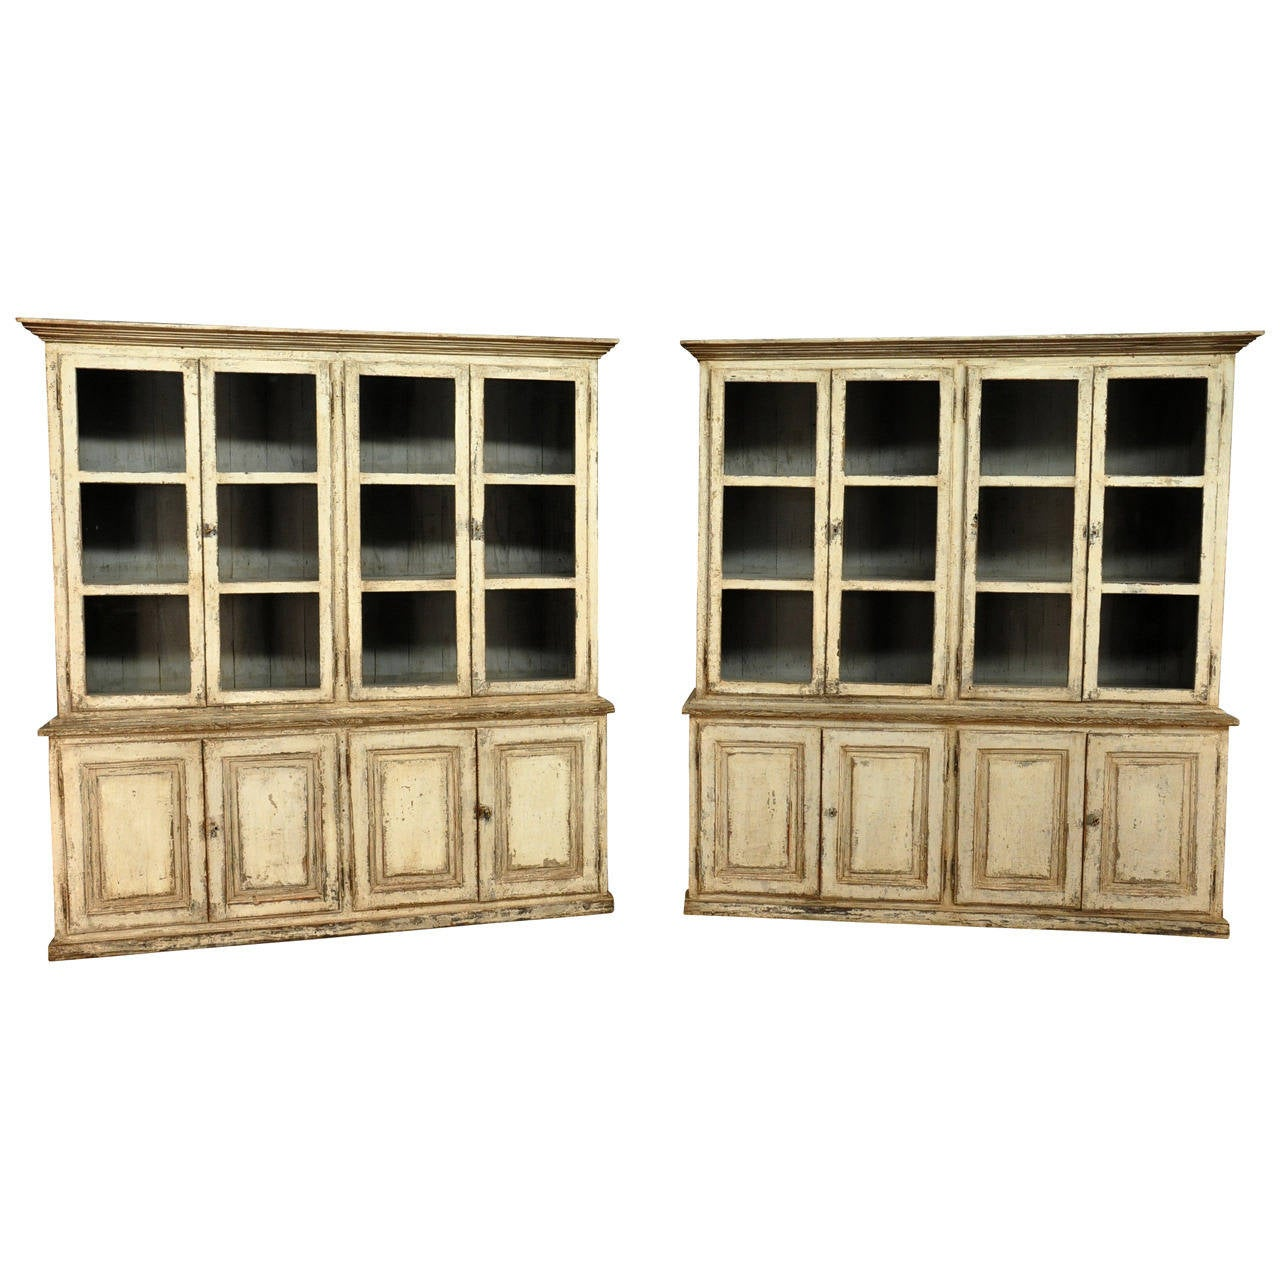 19th Century Bookcases In Solid Painted Wood From Portugal At 1stdibs. Full resolution‎  picture, nominally Width 1280 Height 1280 pixels, picture with #997F32.